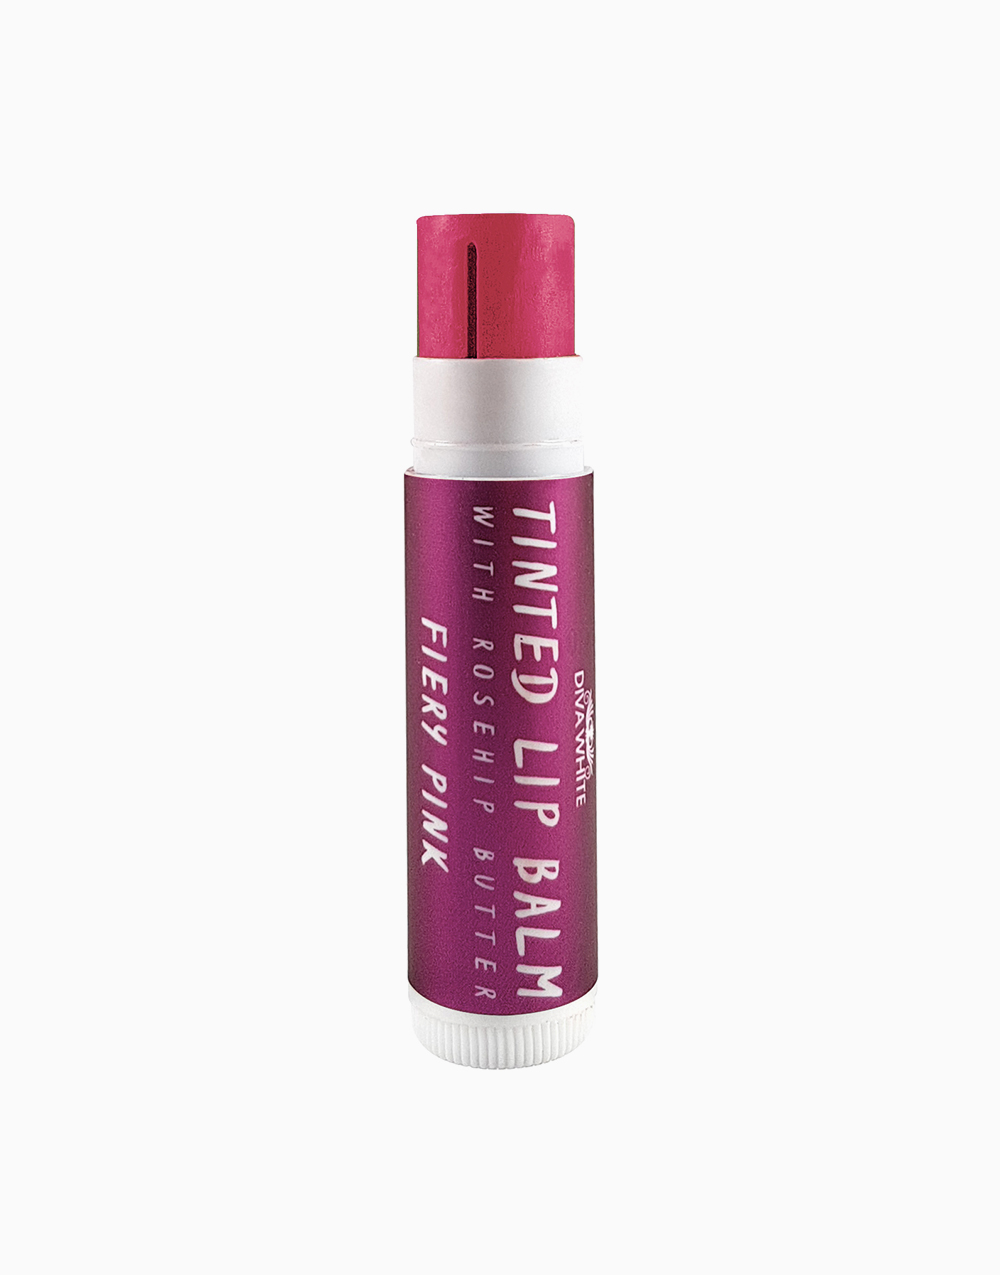 Tinted Lip Balm with Rosehip Butter in Fiery Pink by Diva White